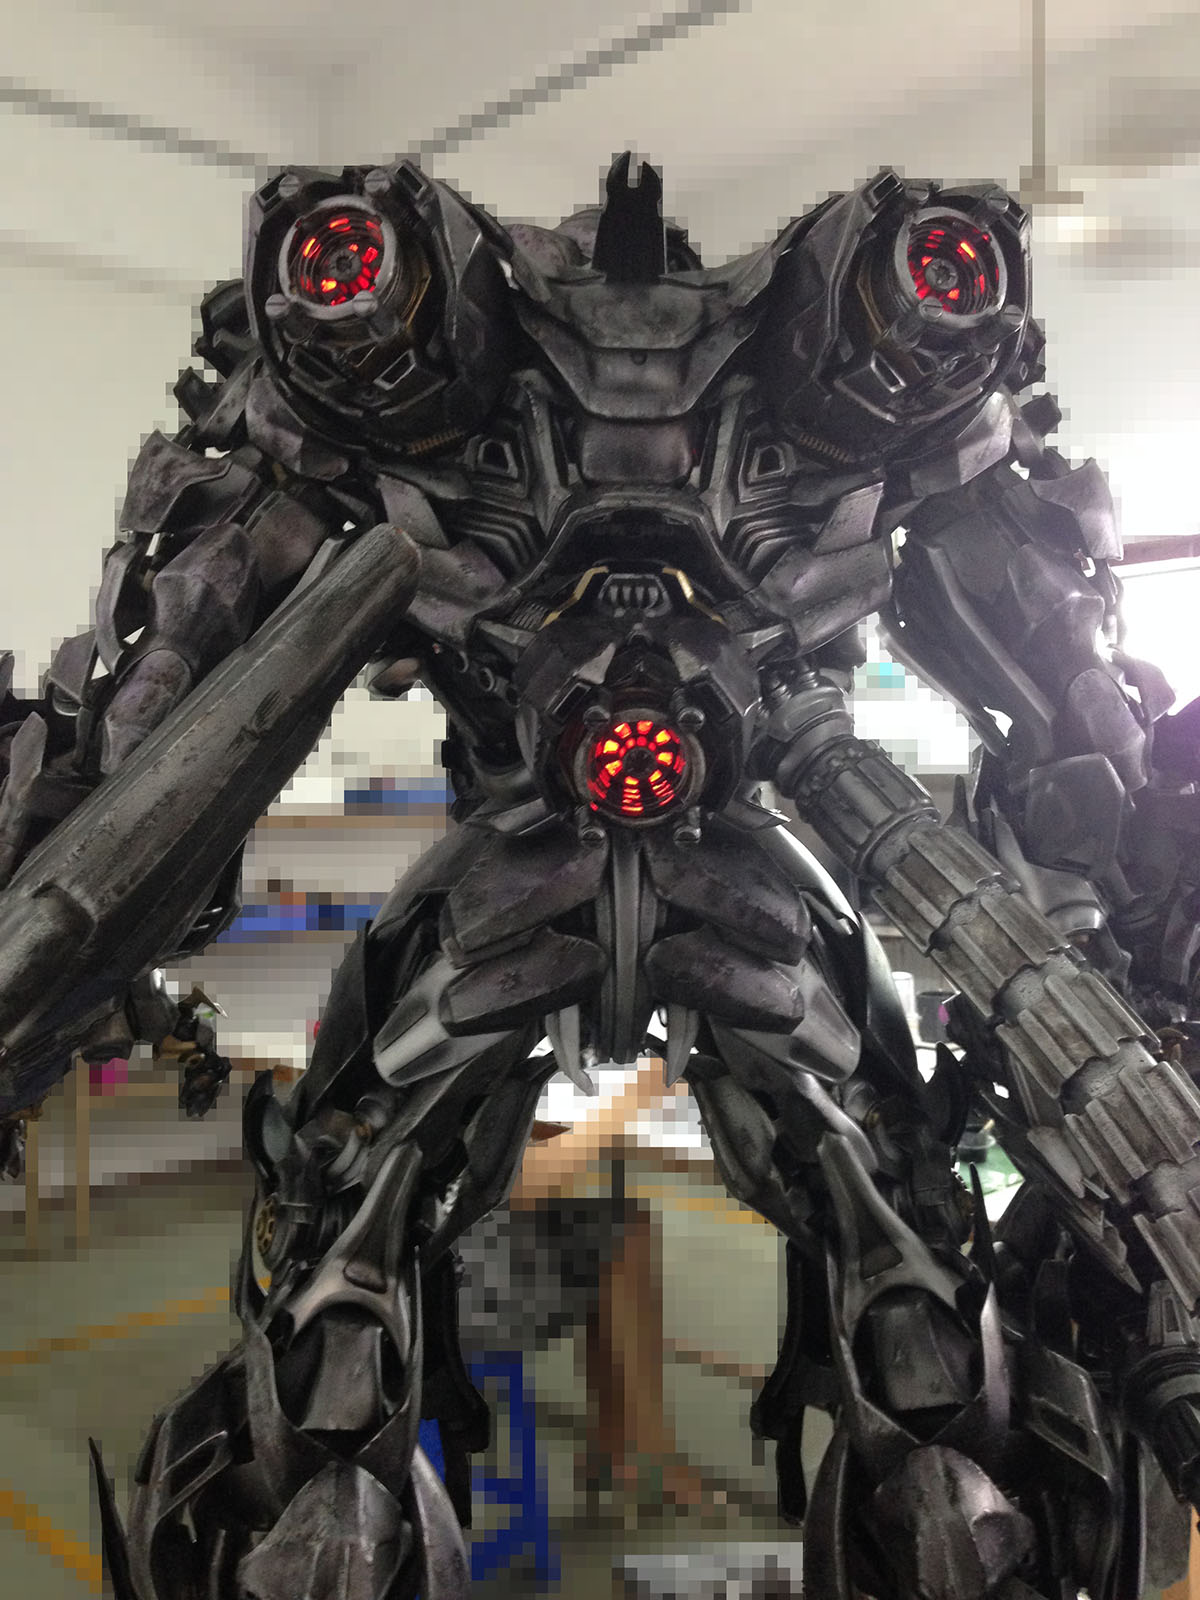 Statues des Films Transformers (articulé, non transformable) ― Par Prime1Studio, M3 Studio, Concept Zone, Super Fans Group, Soap Studio, Soldier Story Toys, etc - Page 3 531145244